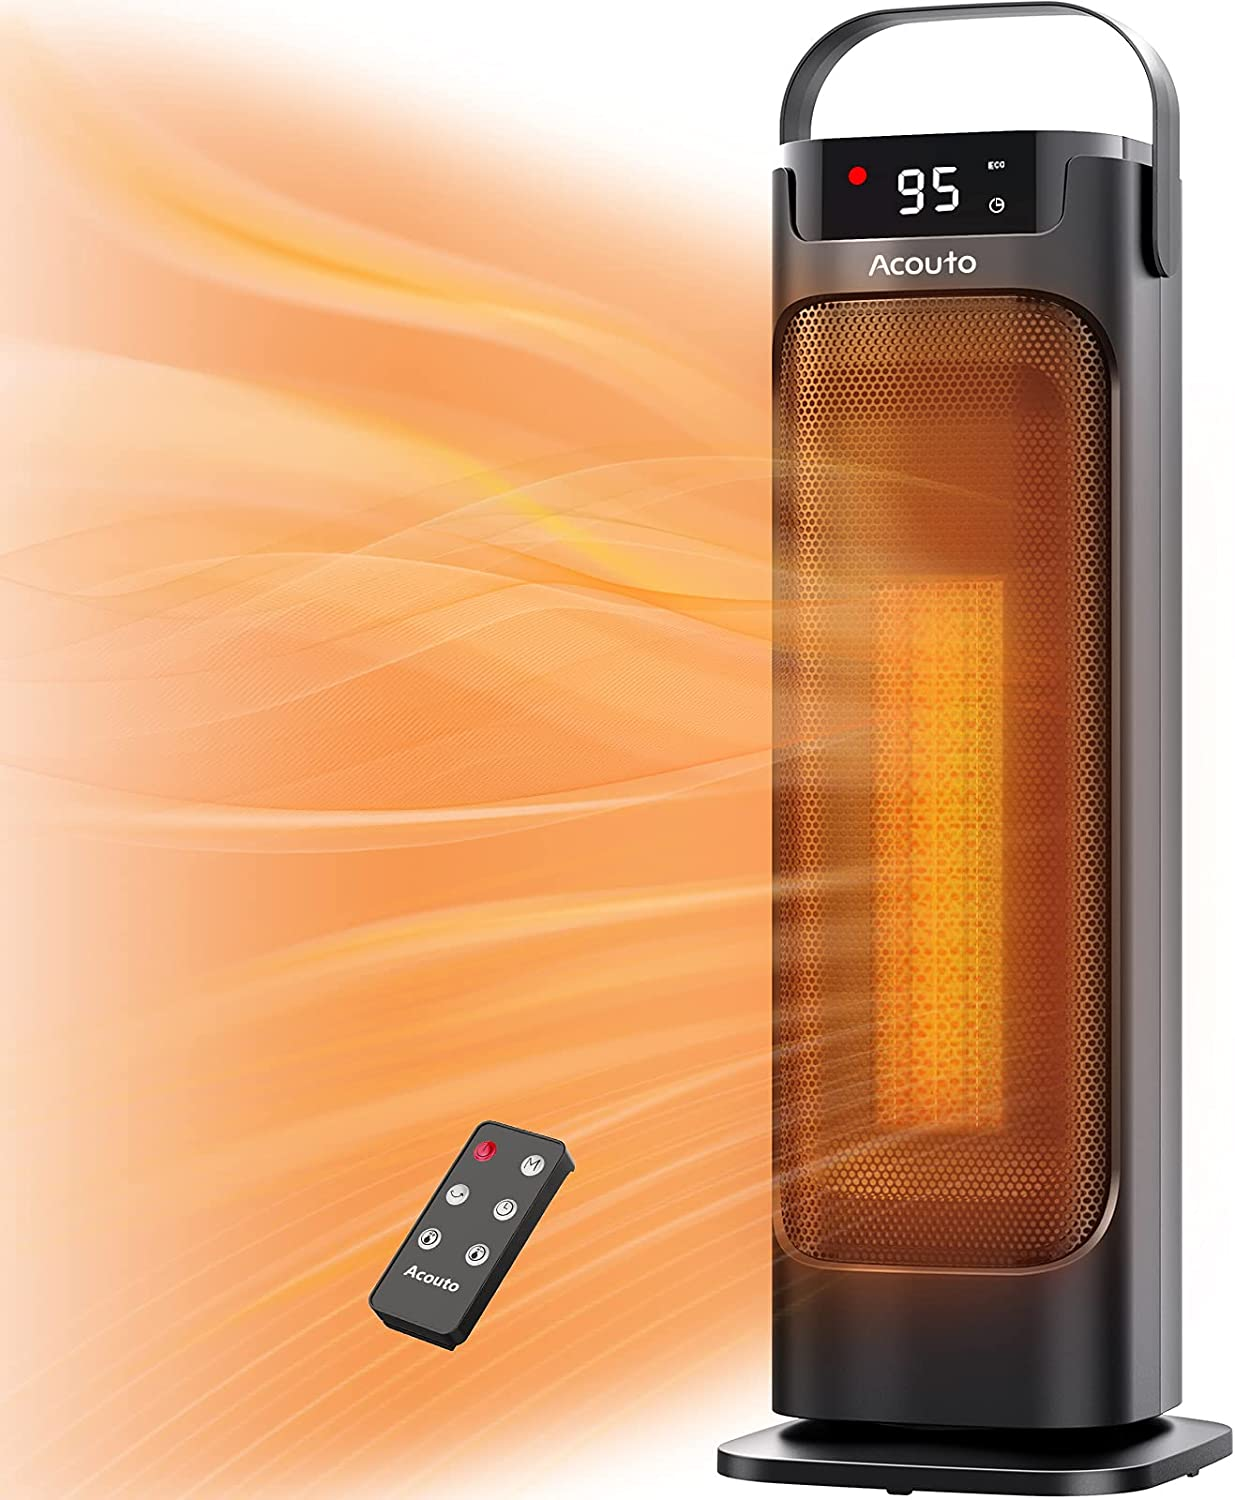 Space Heater, Acouto 1500W Portable Electric Heaters Indoor Use, Oscillating Ceramic Tower Heater for Bedroom and Home Office with Remote ECO Mode 12H Timer Overheating and Tip-over Protection